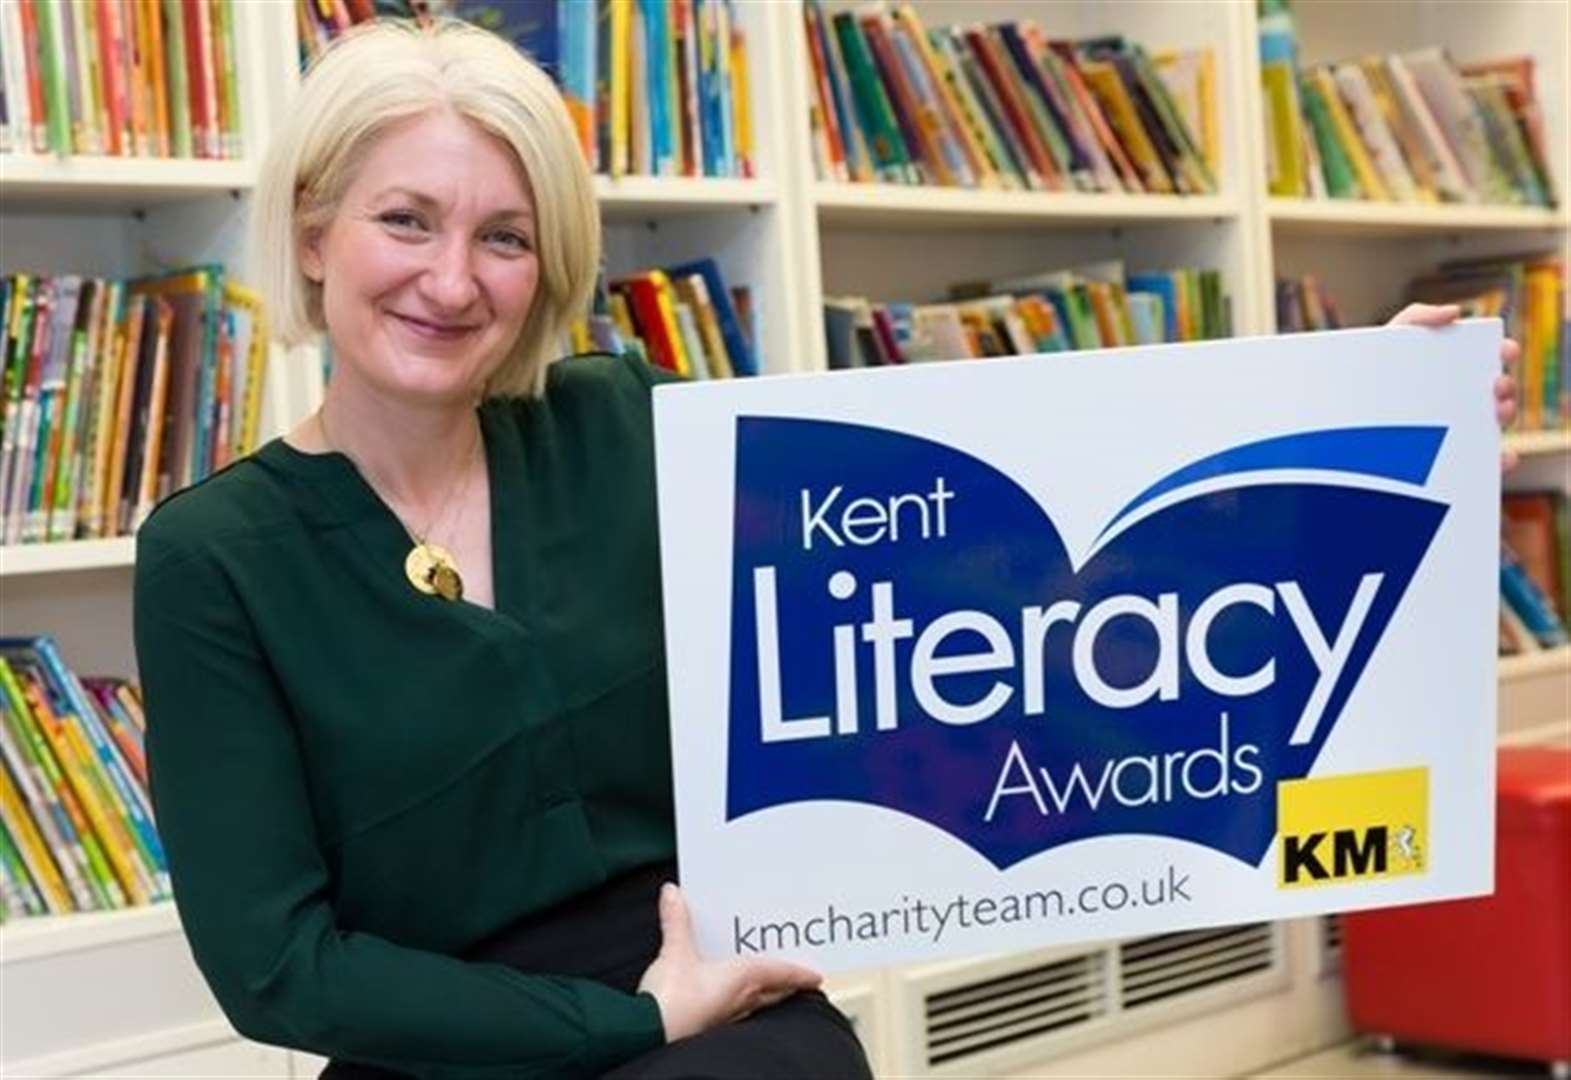 Last chance for literacy awards submissions